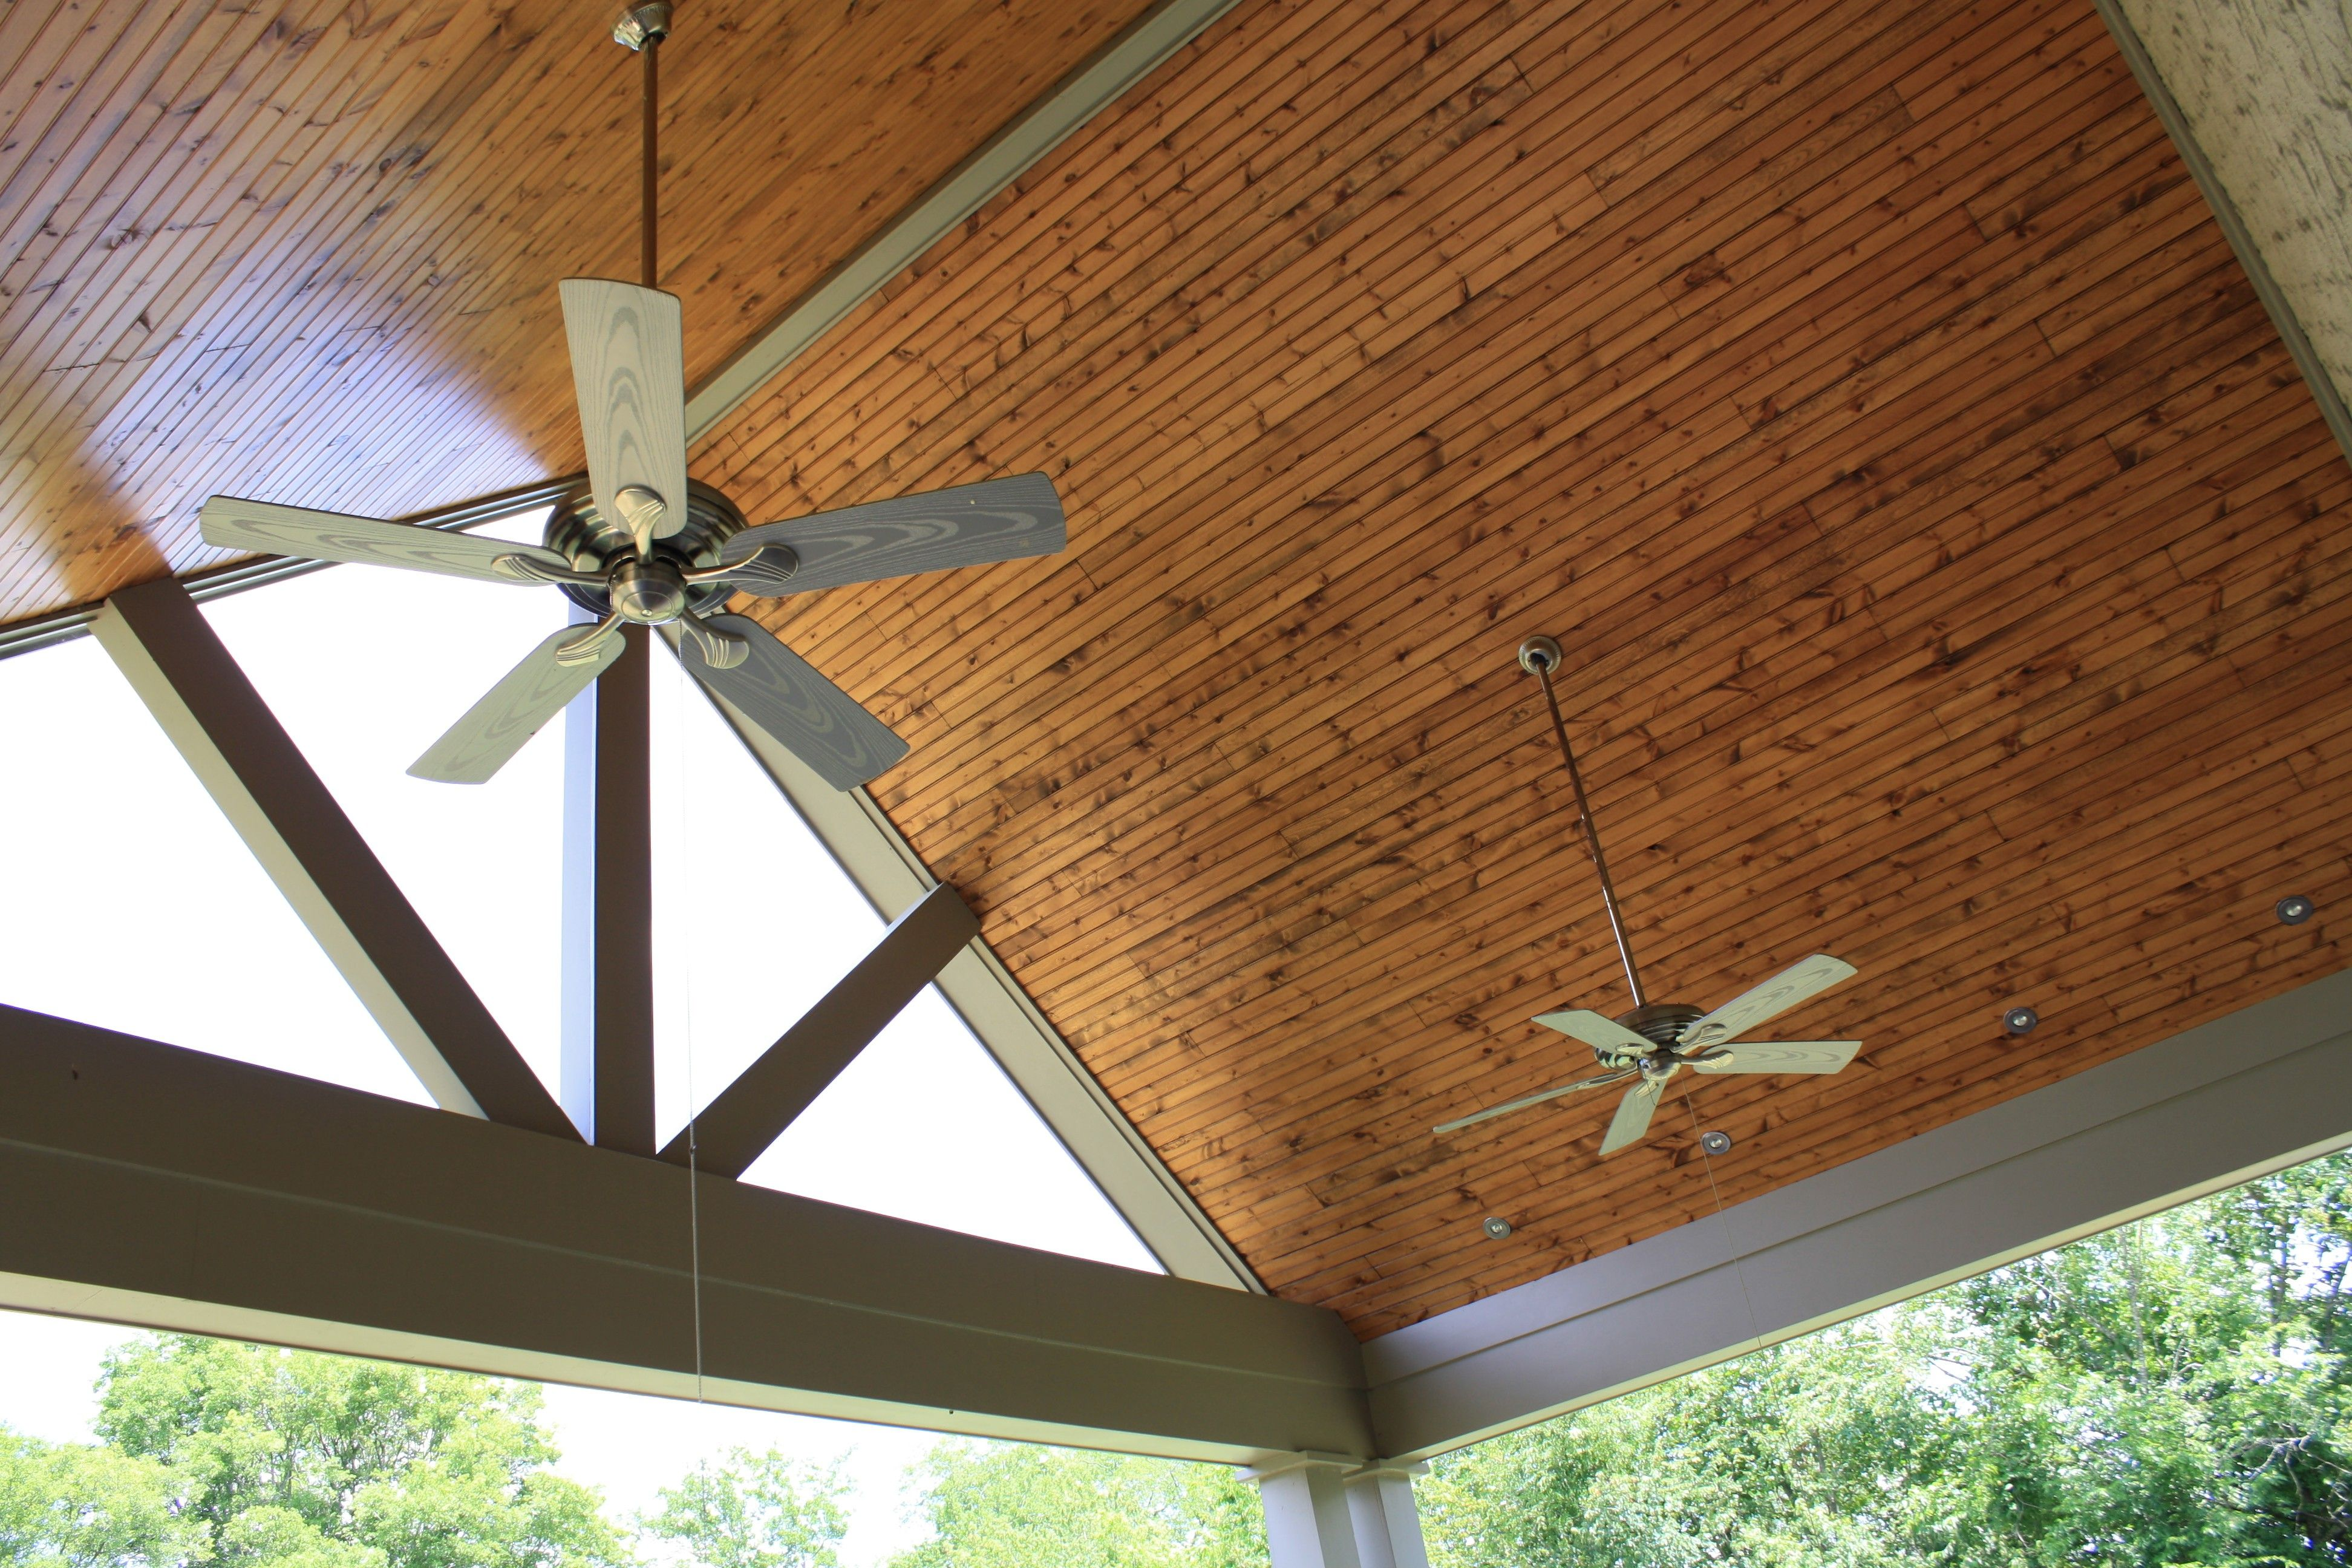 Exterior recessed down lighting and Fair Outdoor Recessed Lighting For  Concrete Patioexterior recessed down lighting and Fair Outdoor Recessed Lighting  . Exterior Recessed Canopy Lighting. Home Design Ideas